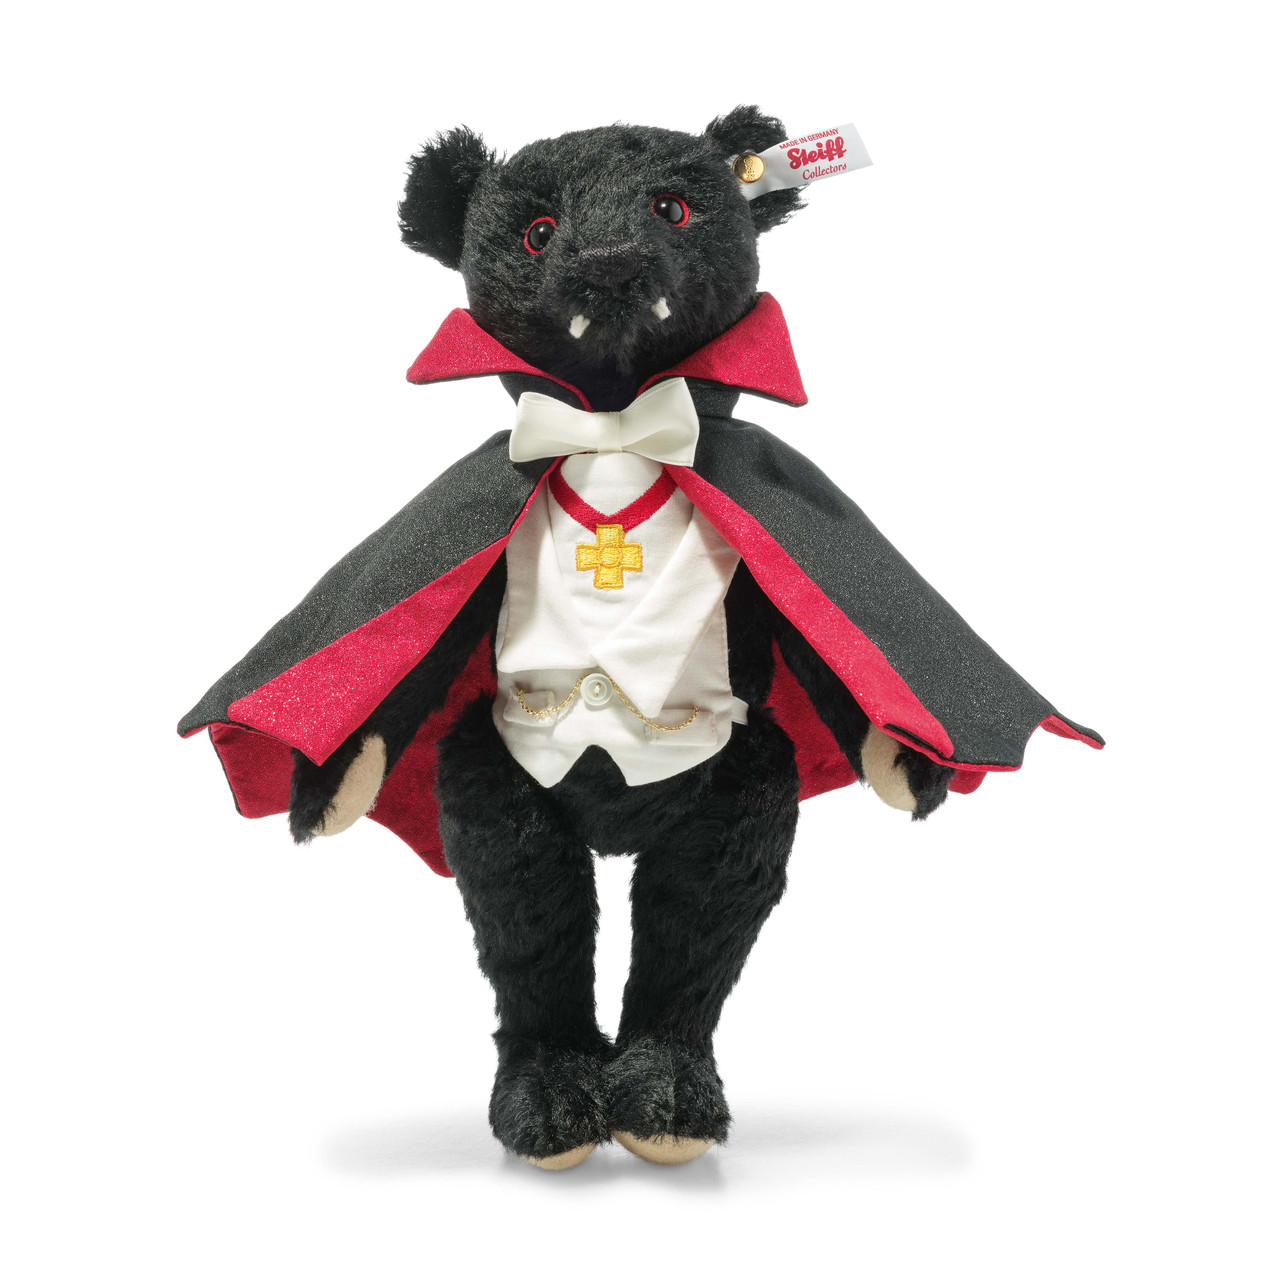 Plush Horse Stuffed Animal, Dracula Limited Edition Teddy Bear Universal Studios Free Shipping Over 50